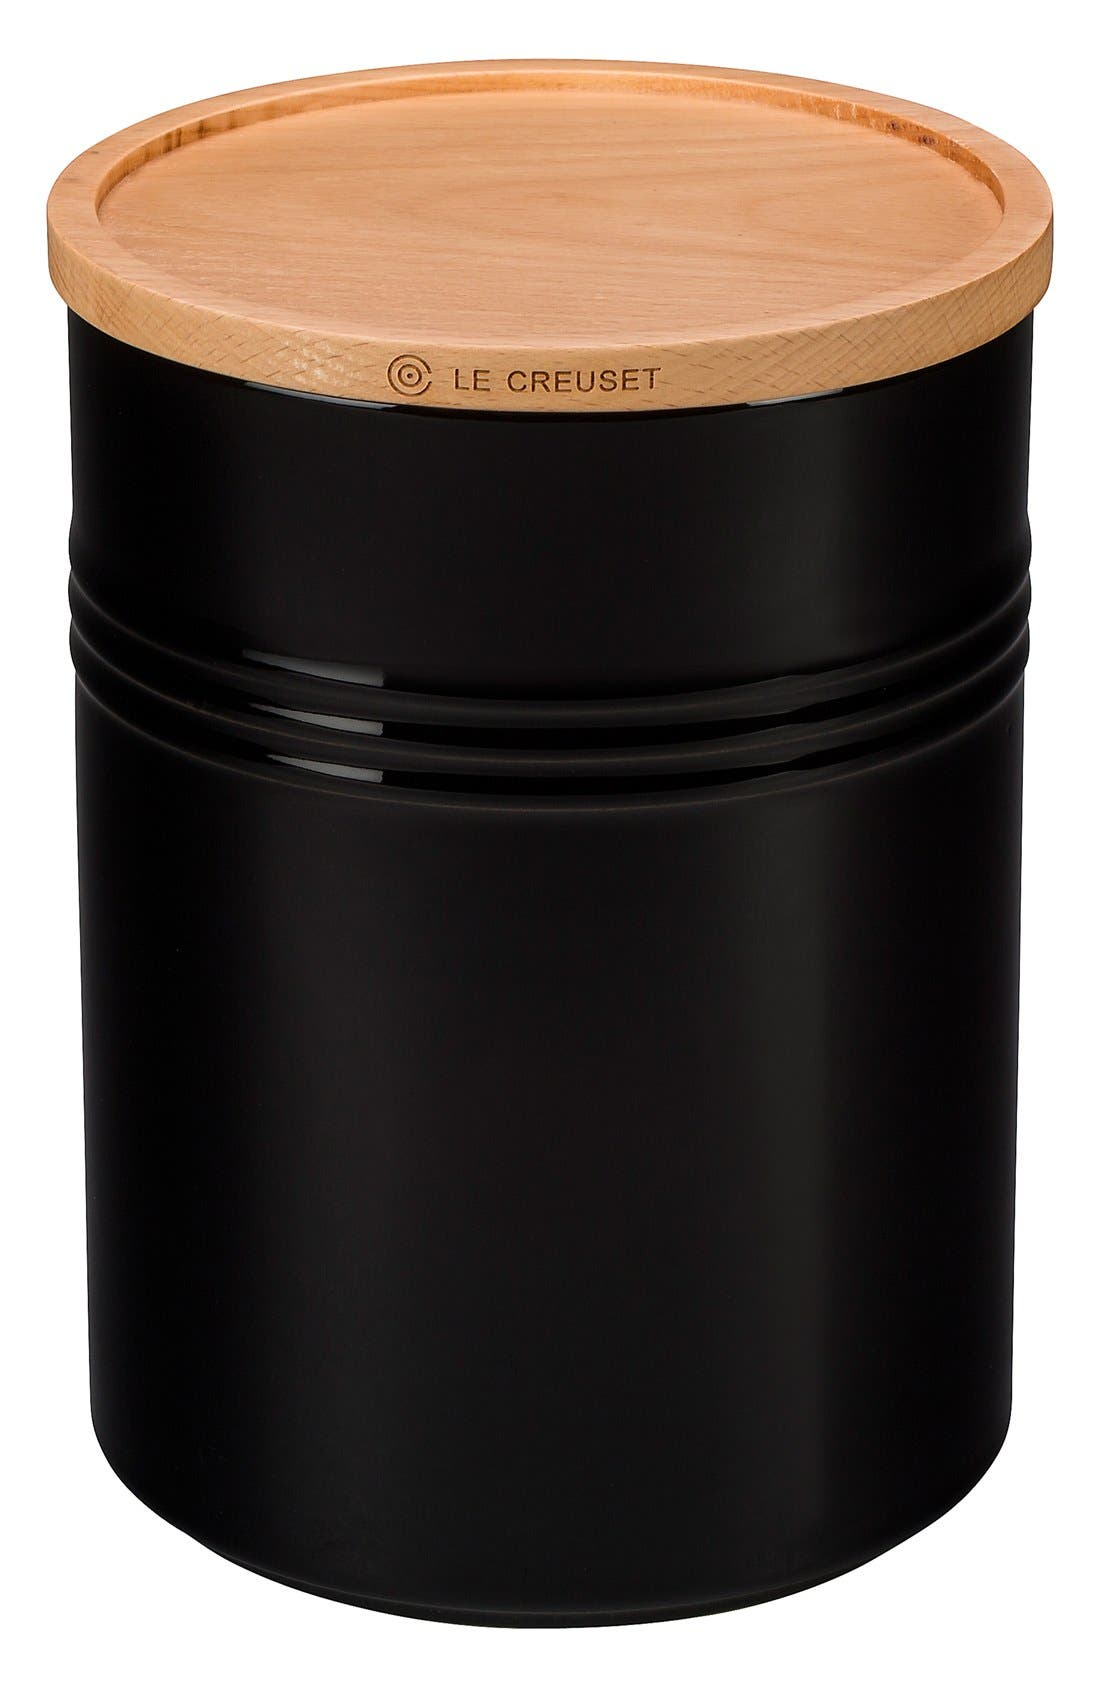 Glazed 22 Ounce Stoneware Storage Canister with Wooden Lid,                         Main,                         color, Black Onyx